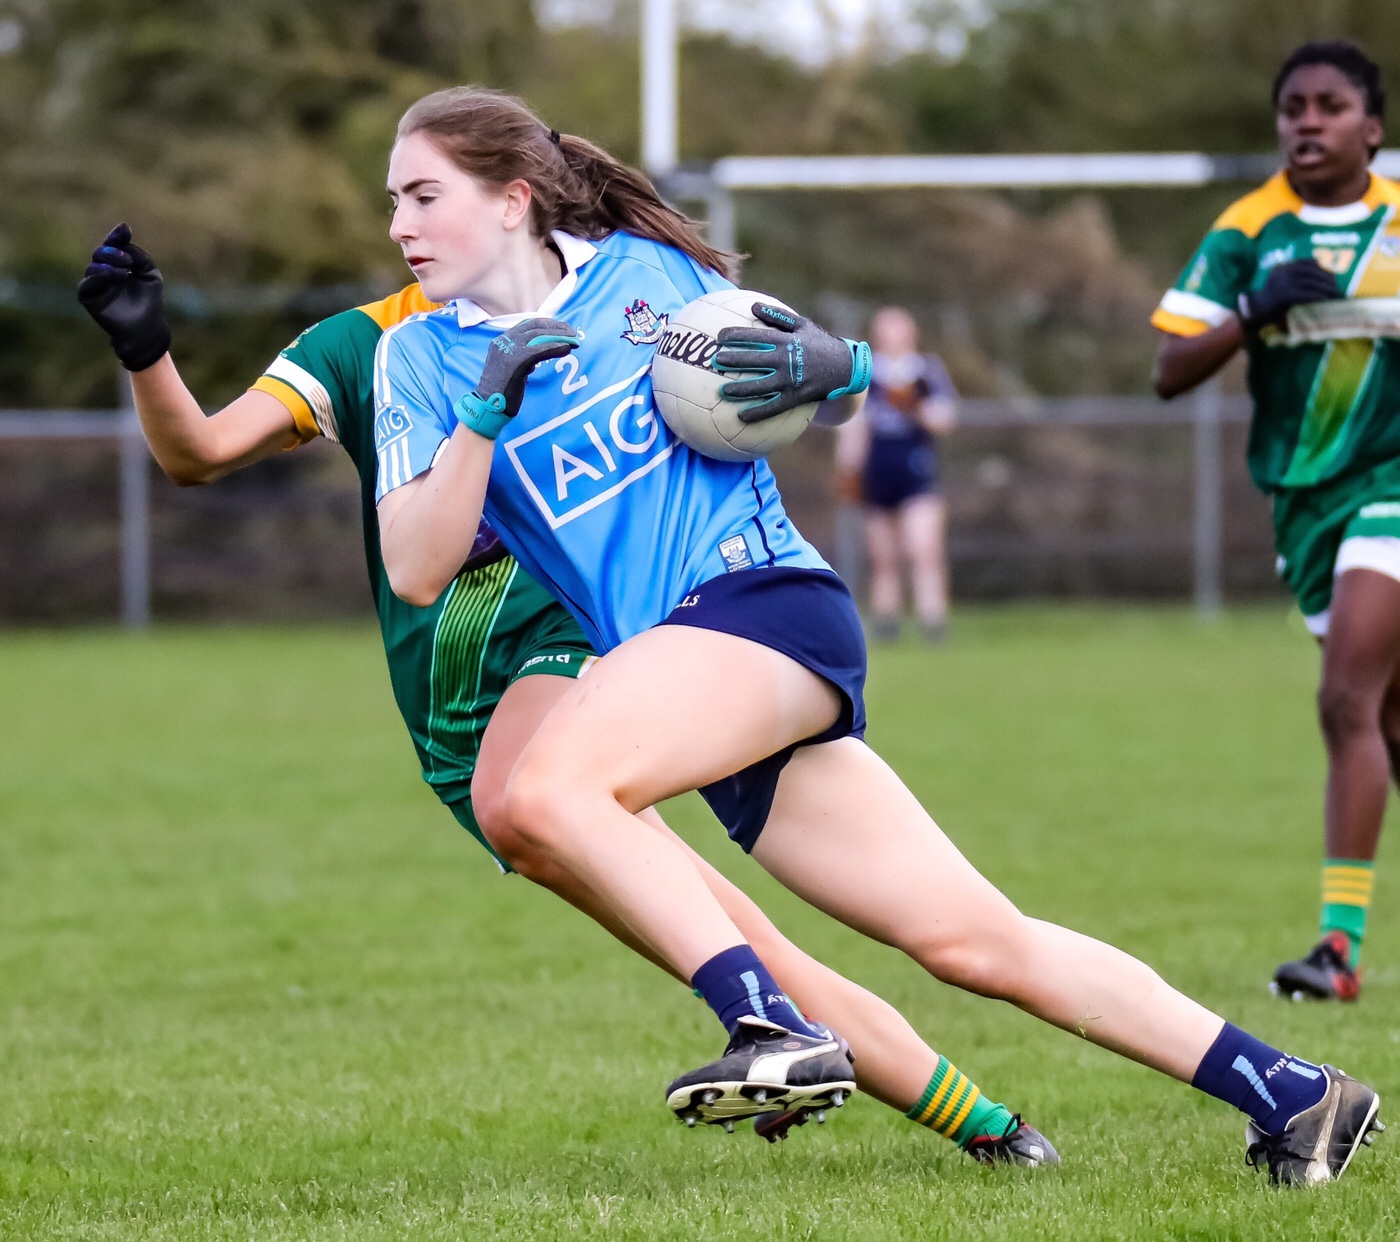 Dublin Ladies Minor Football in sky blue jersey with navy shorts in action against Meath the Dublin Ladies Minors face Cork in the All Ireland Semi Final